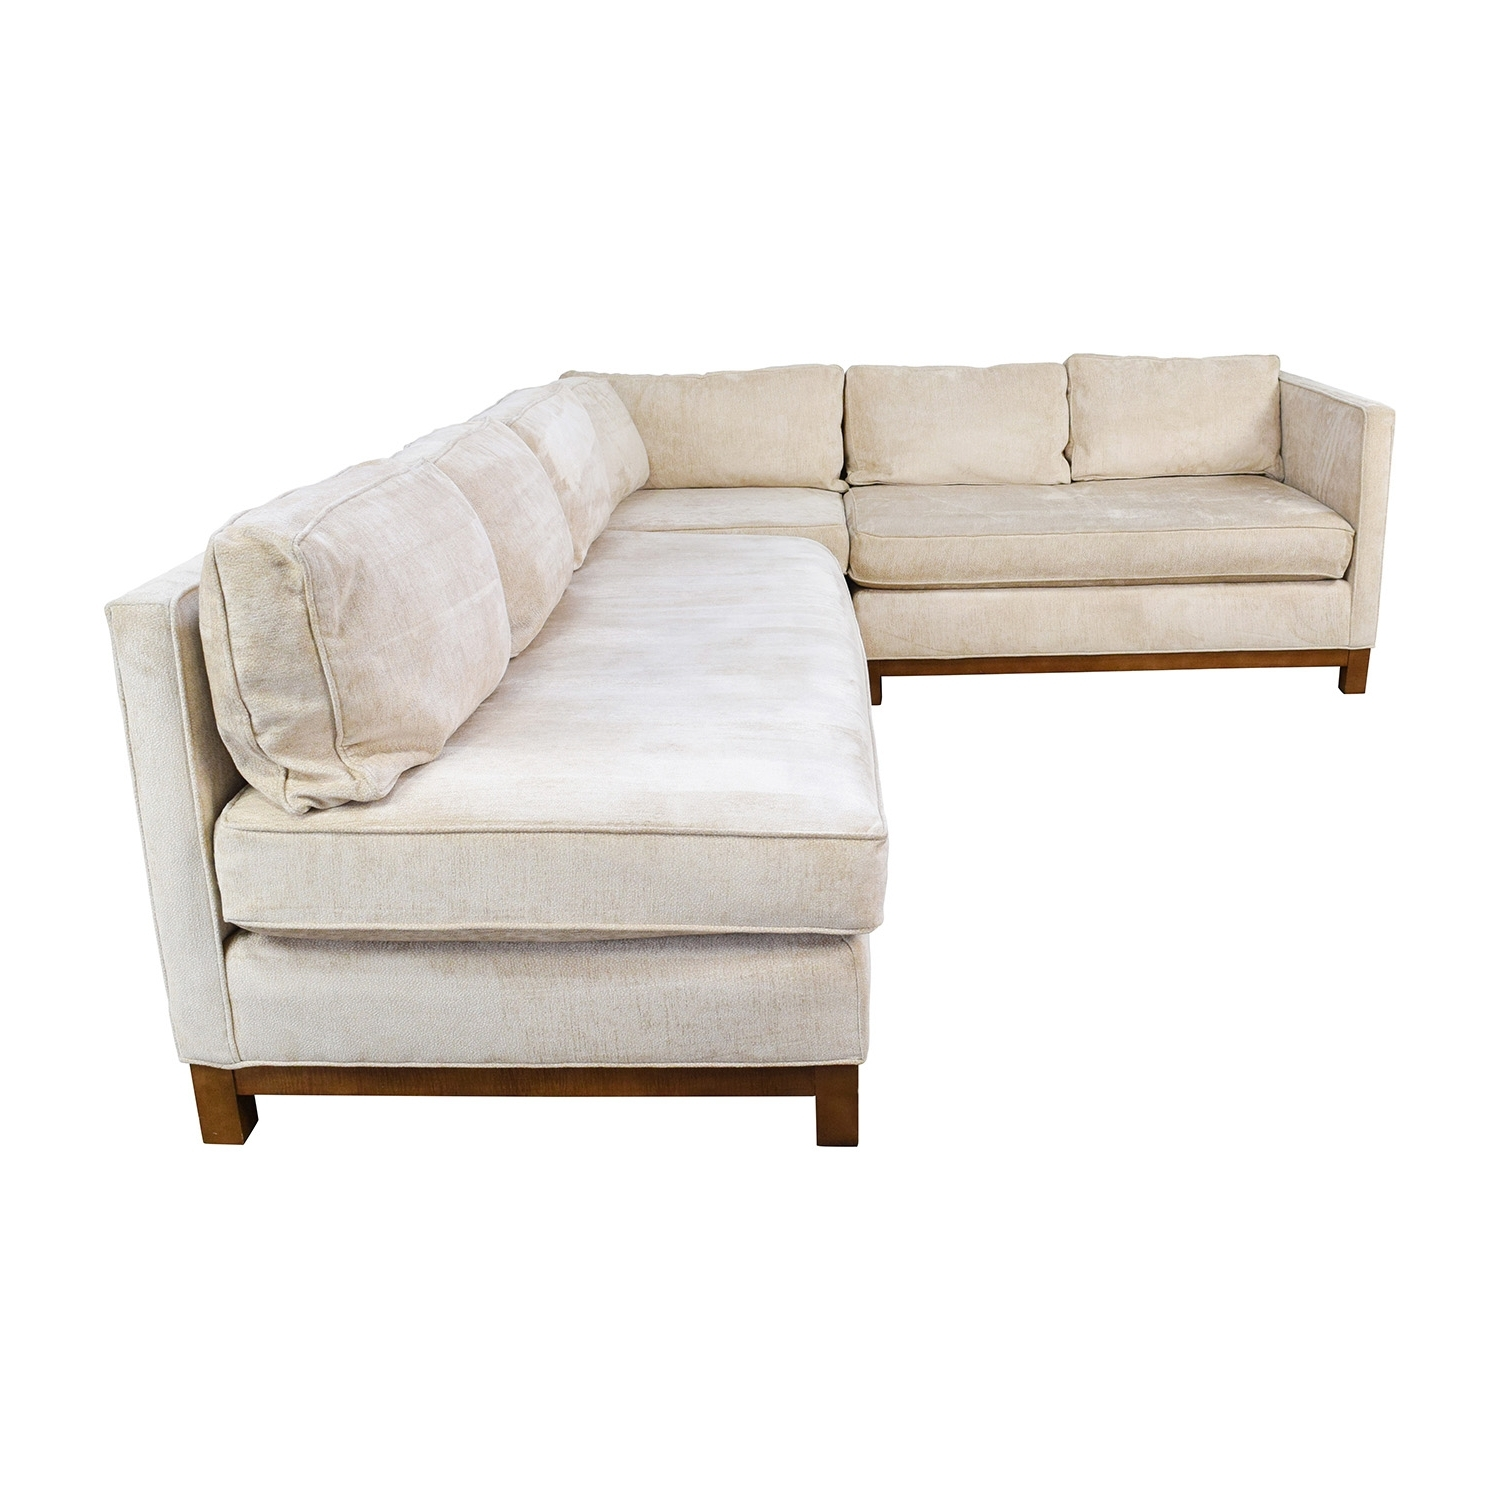 [%76% Off – Mitchell Gold And Bob Williams Mitchell Gold + Bob Throughout Most Recent Gold Sectional Sofas|Gold Sectional Sofas Regarding Popular 76% Off – Mitchell Gold And Bob Williams Mitchell Gold + Bob|Well Known Gold Sectional Sofas Inside 76% Off – Mitchell Gold And Bob Williams Mitchell Gold + Bob|Well Known 76% Off – Mitchell Gold And Bob Williams Mitchell Gold + Bob Regarding Gold Sectional Sofas%] (View 20 of 20)